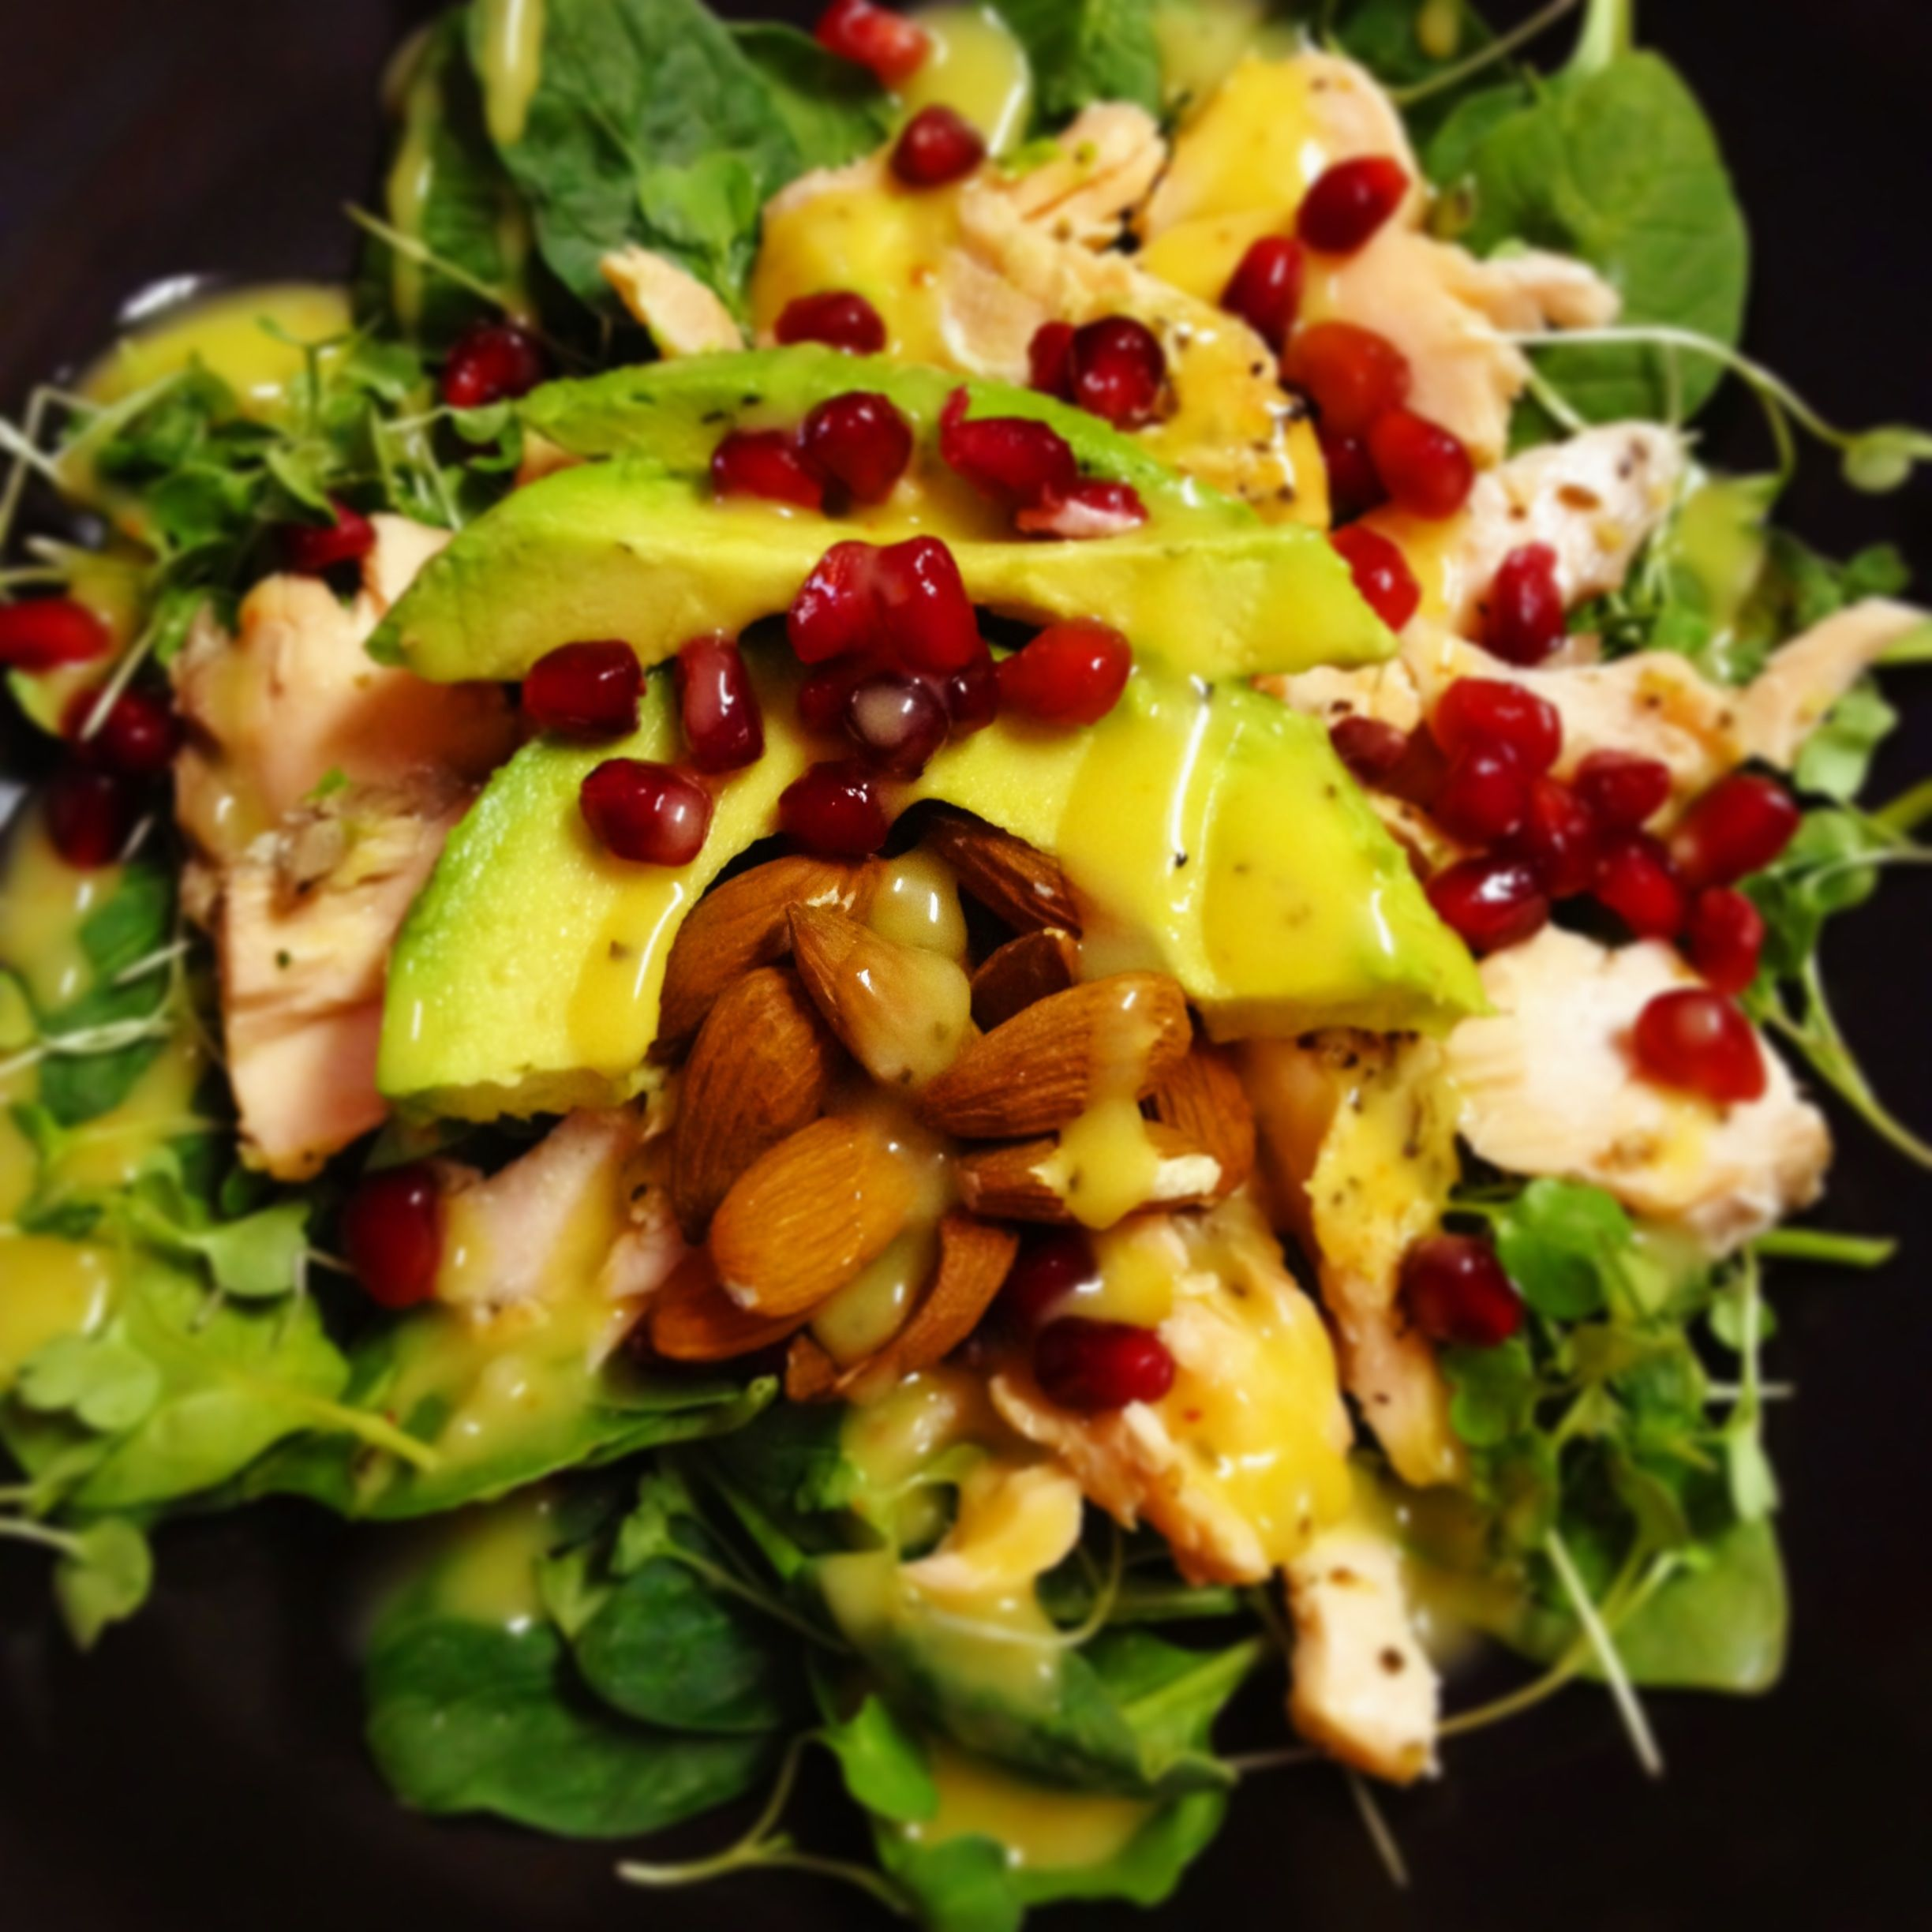 Skillet Roasted Salmon With Avocado Pomegranate And: Salmon, Pomegranate, Avocado, And Almonds Over Spinach